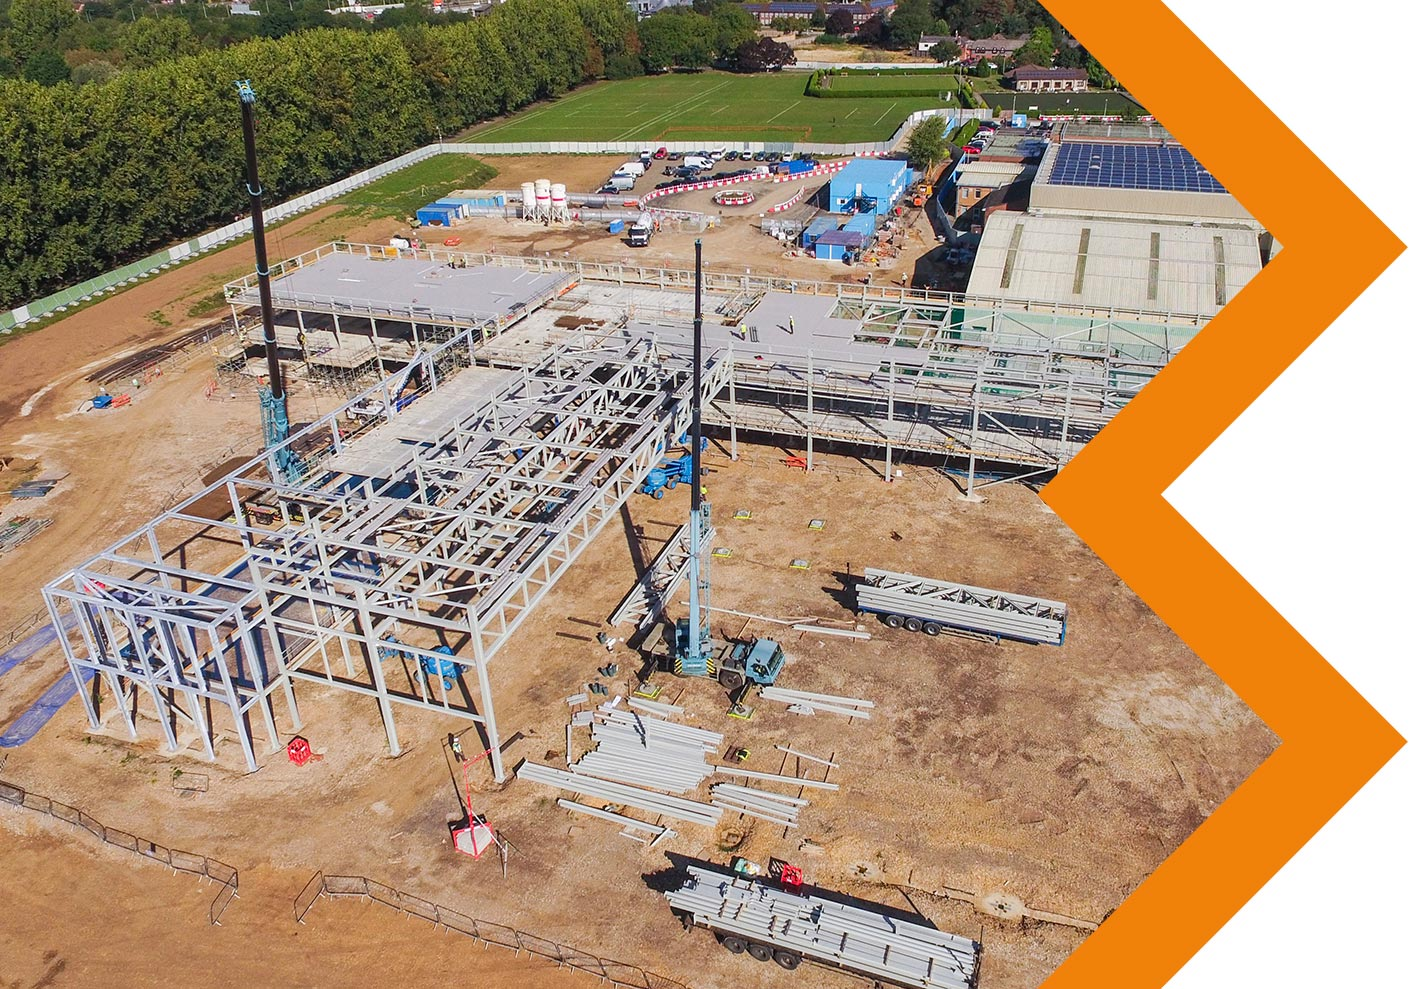 FLEMING PARK, EASTLEIGH  - Construction of new state-of-the-art leisure facilityClient: InterserveTonnage: 700 tonnesSector: LeisureProject Value: £1,020,000